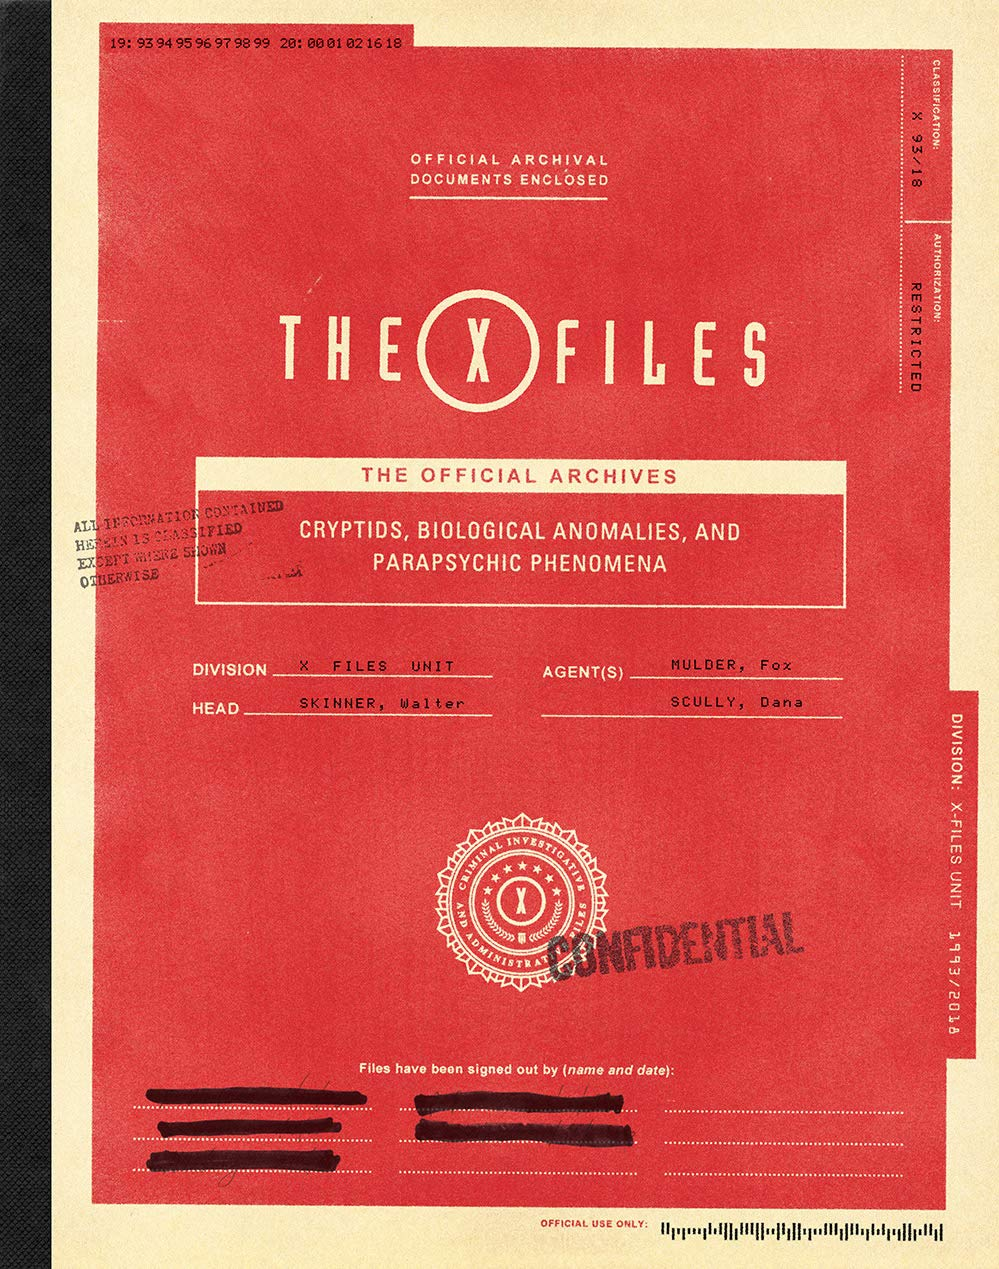 The X-Files: The Official Archives: Cryptids, Biological Anomalies, and Parapsychic Phenomena